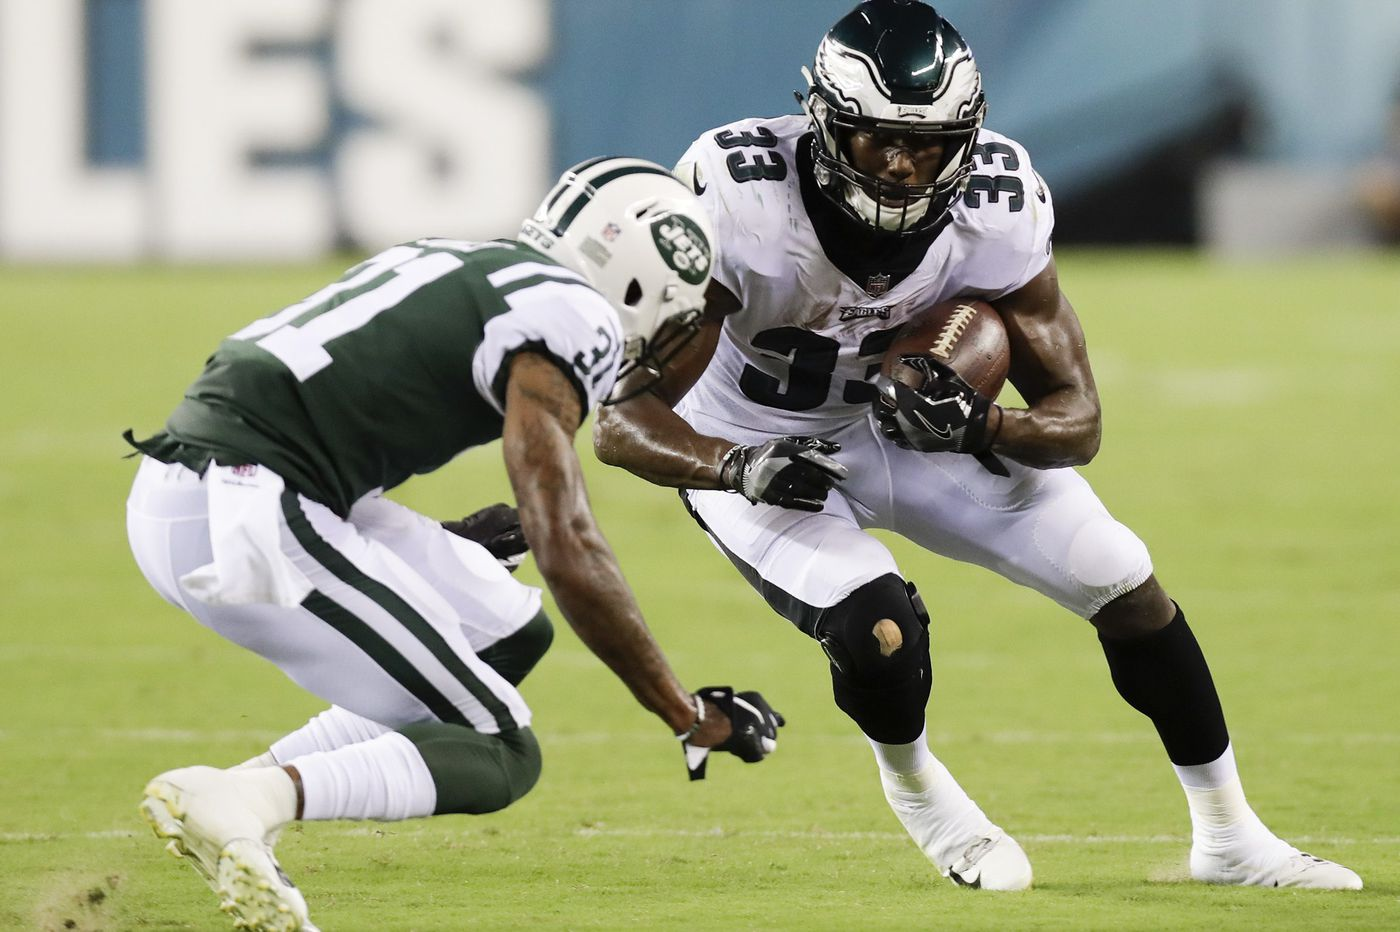 Eagles sign running back Josh Adams off practice squad, release DeAndre Carter